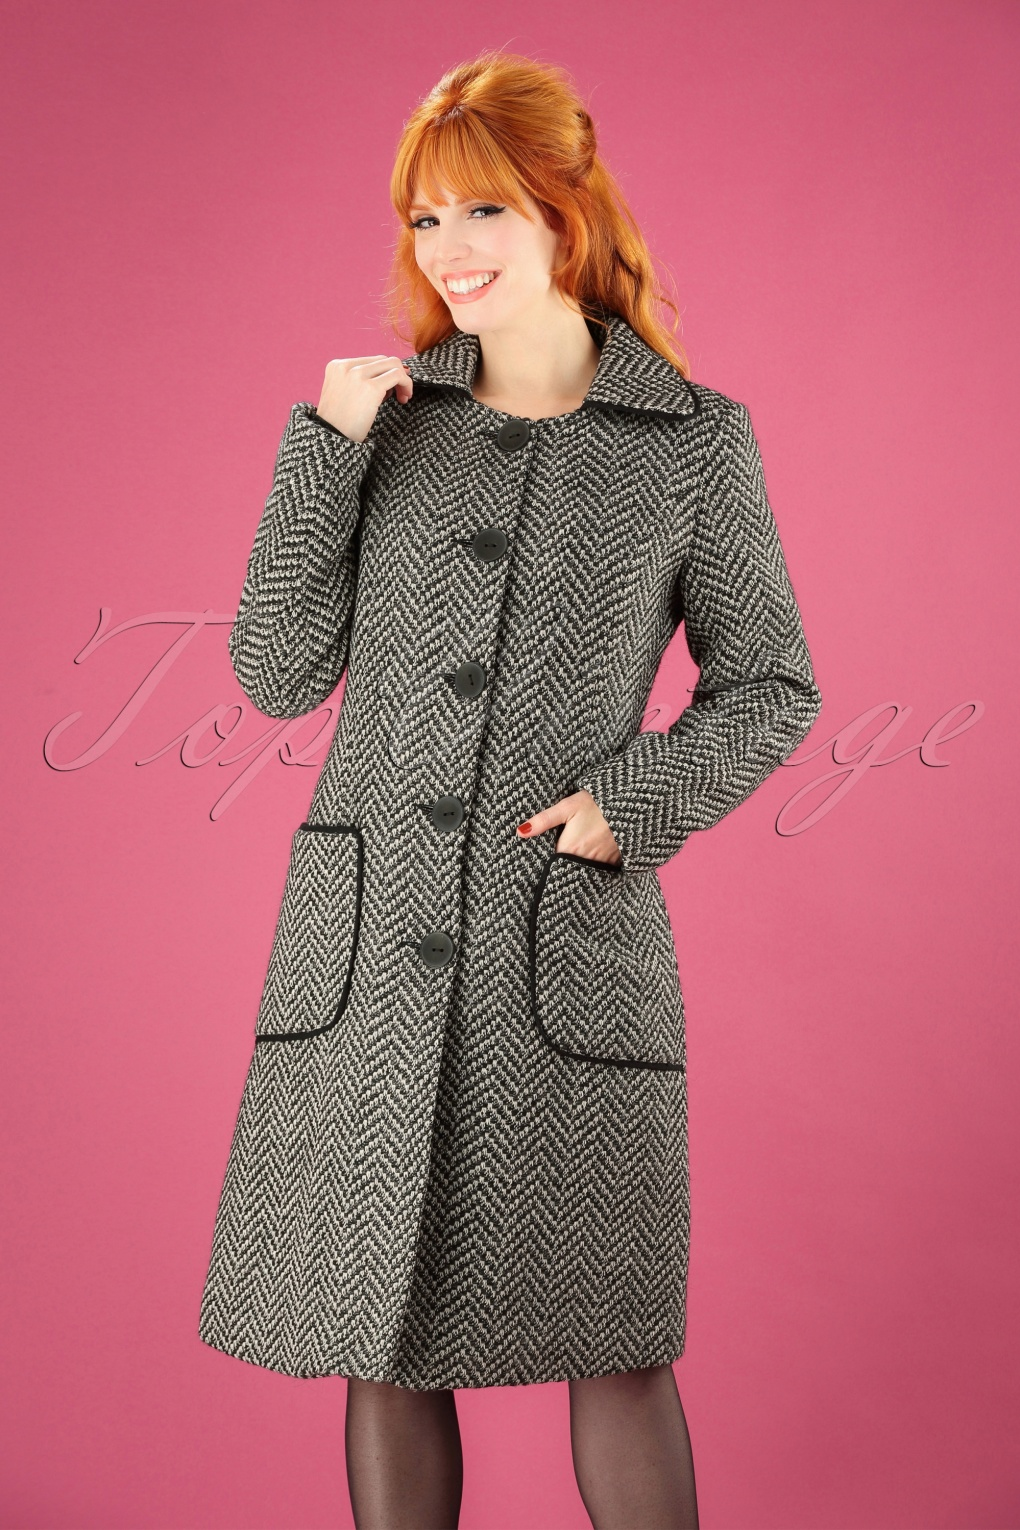 Vintage Coats & Jackets | Retro Coats and Jackets 60s Tilly Herringbone Coat in Black and White £150.37 AT vintagedancer.com